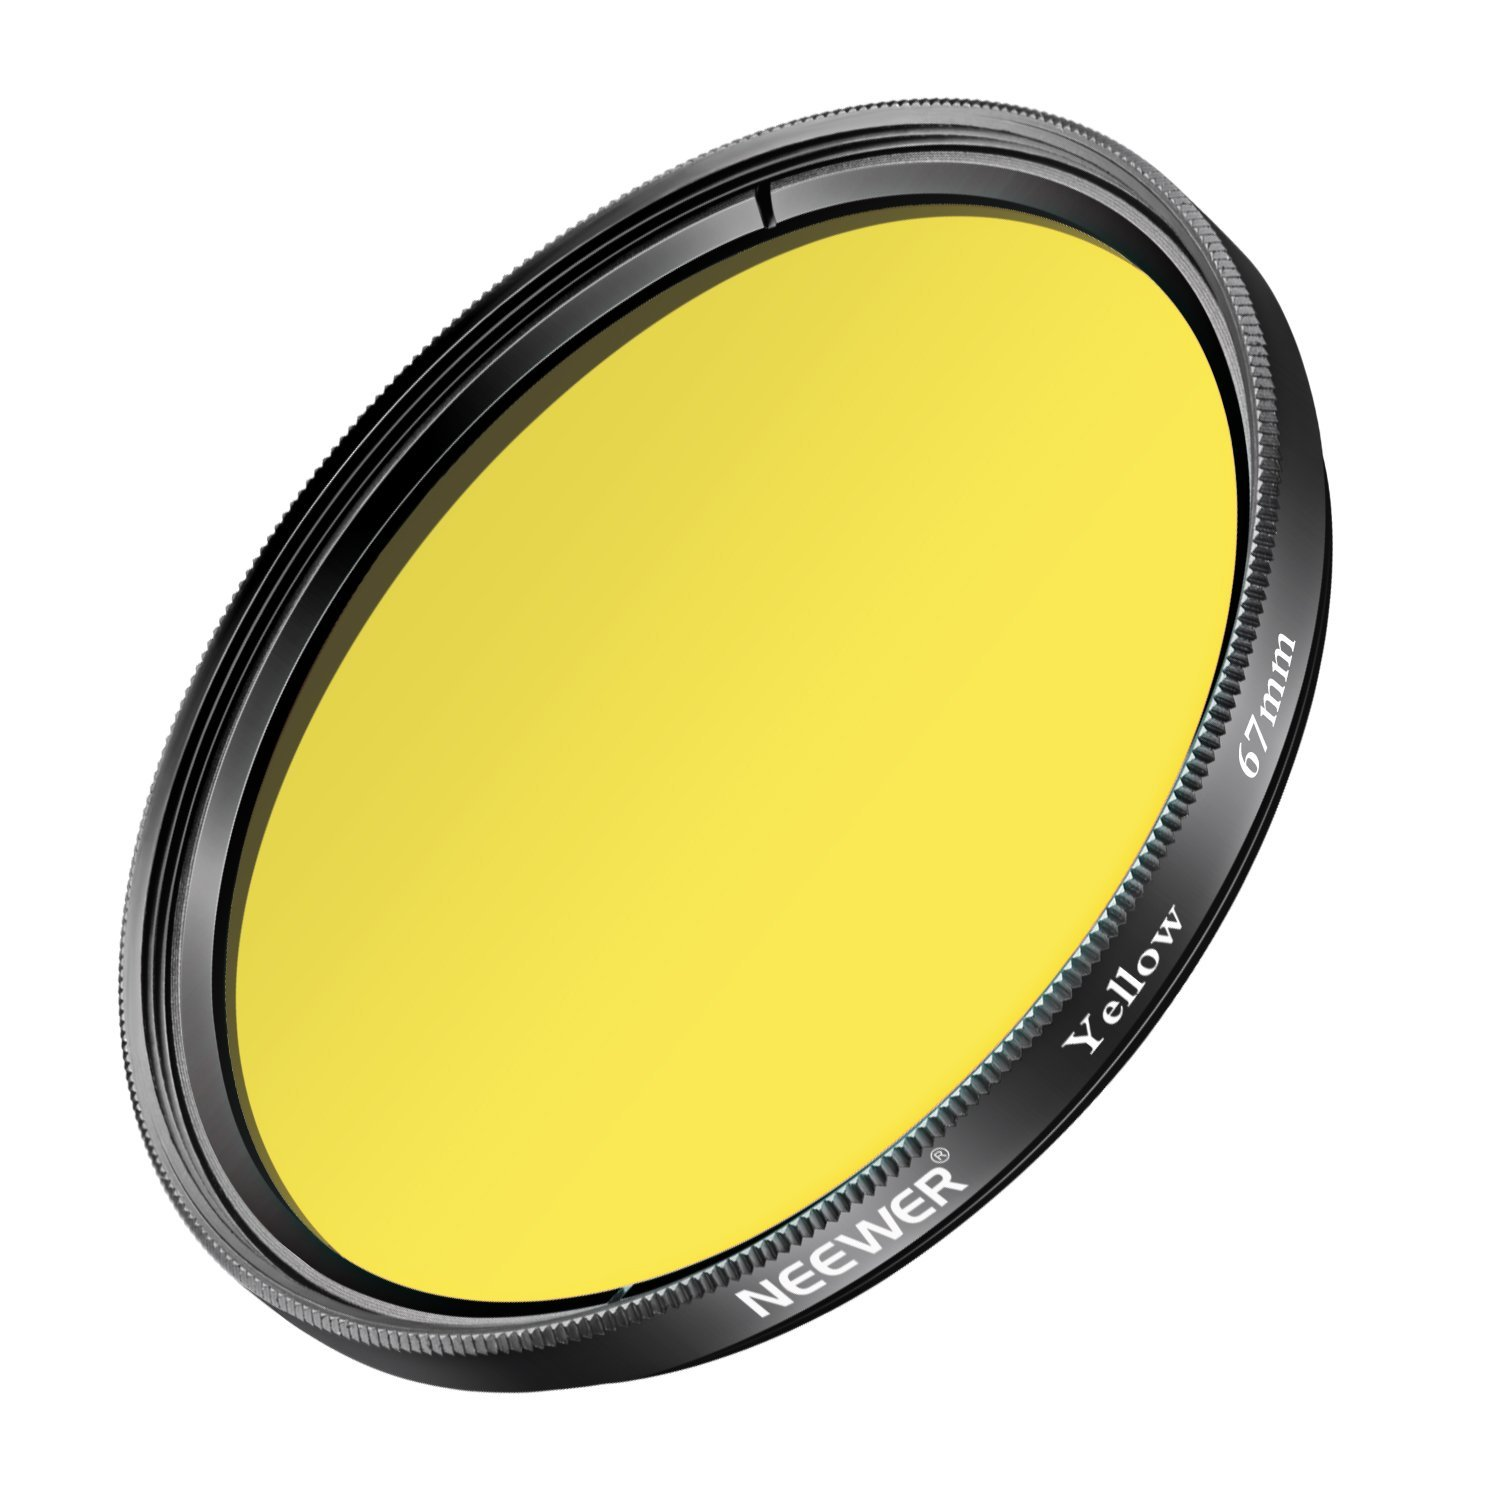 Neewer 67MM Yellow Lens Filter for Canon Rebel (T5i, T4i, T3i, T2i), EOS (70D, 700D, 650D, 600D, 550D) DSLR Cameras, Made of HD Optical Glass and Aluminum Alloy Frame